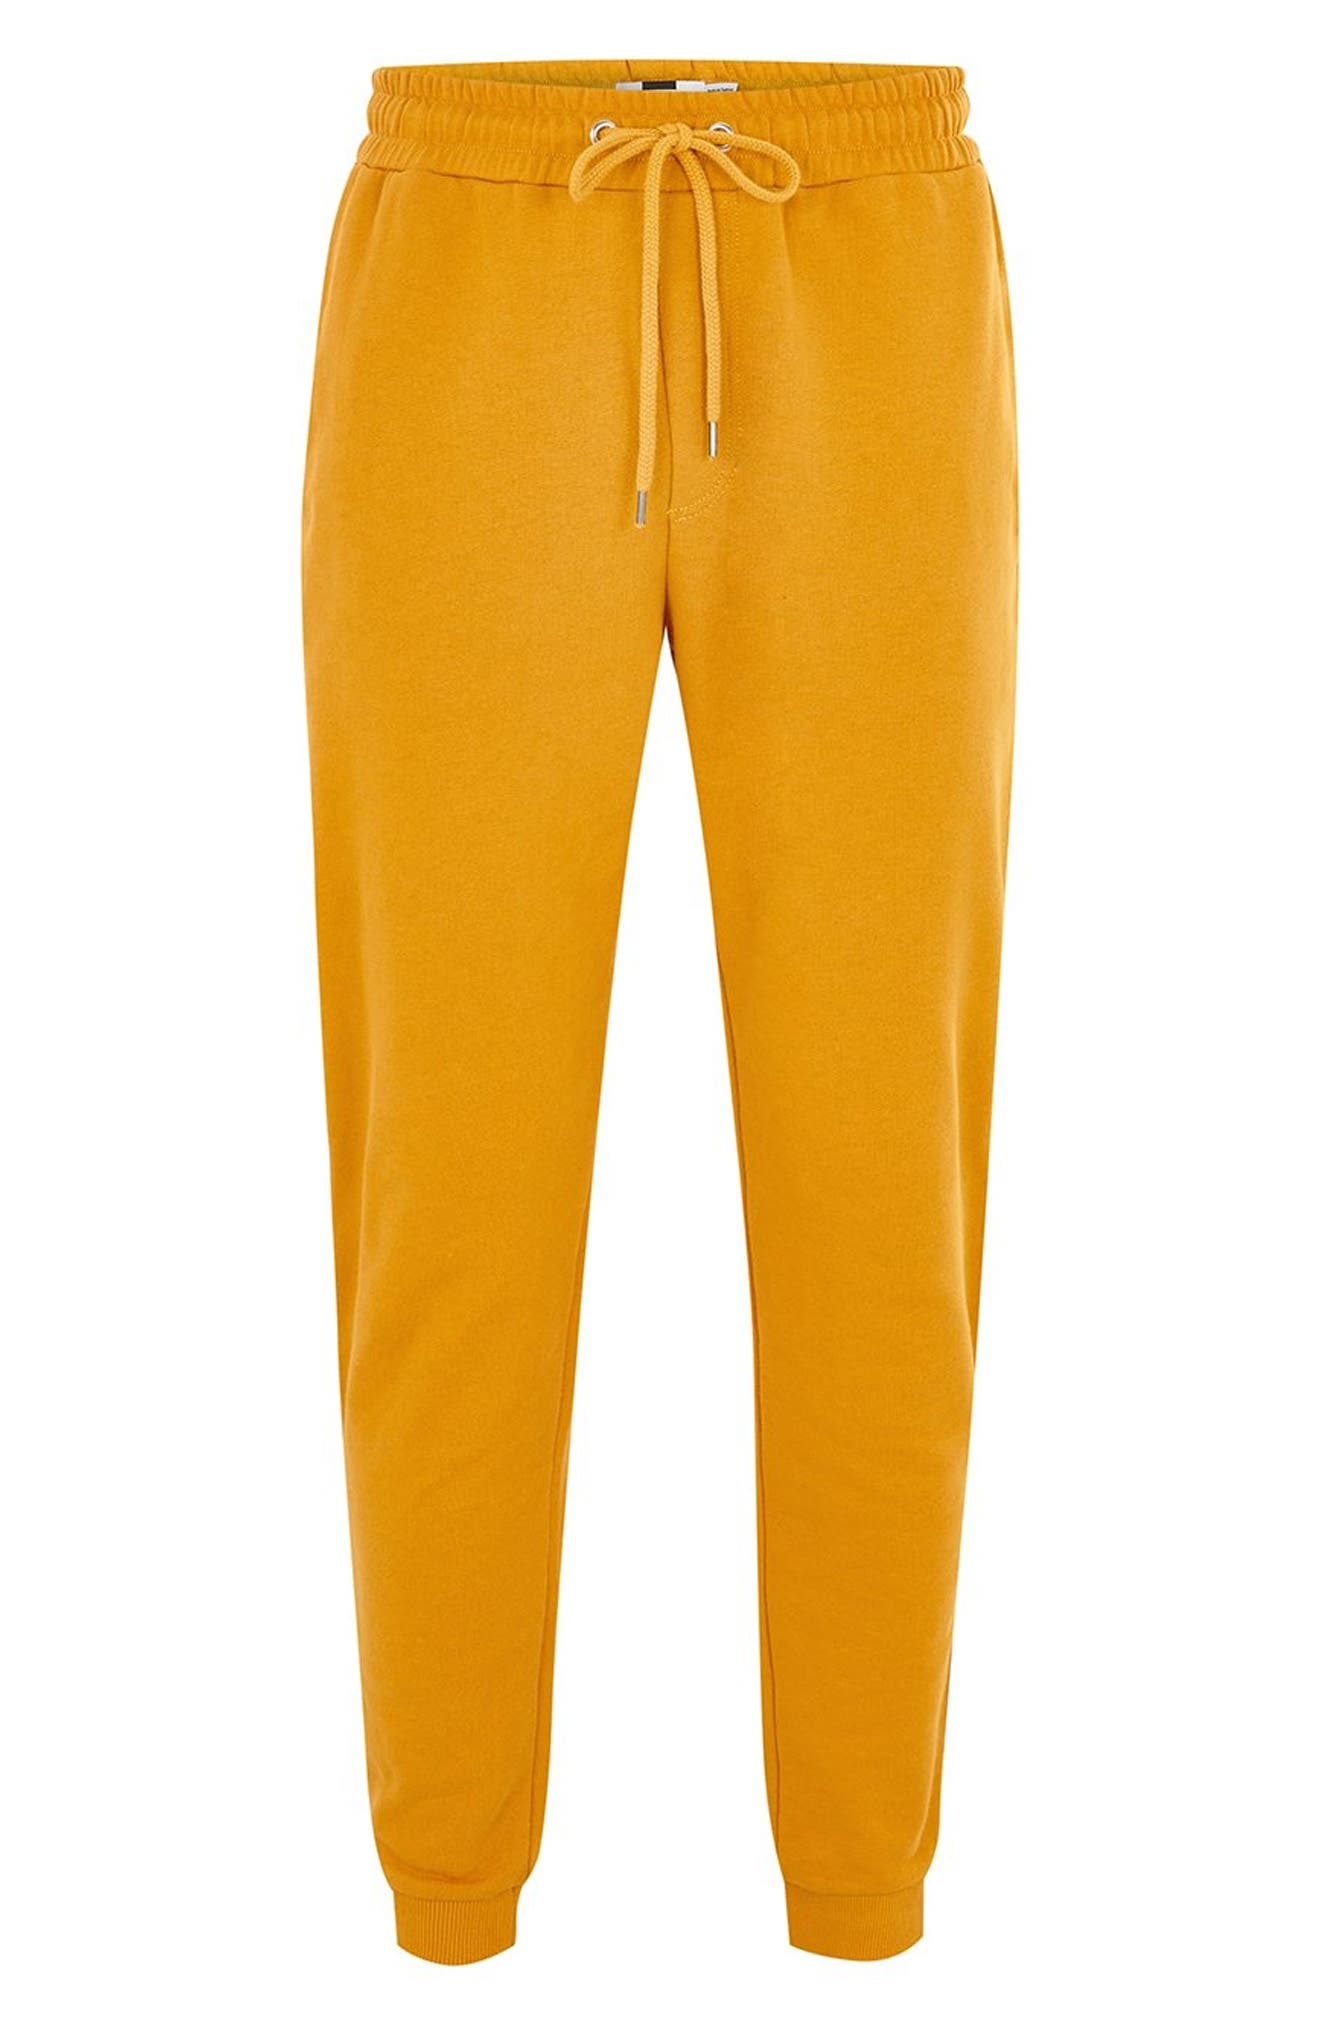 Classic Fit Side Tape Joggers,                             Alternate thumbnail 4, color,                             YELLOW MULTI